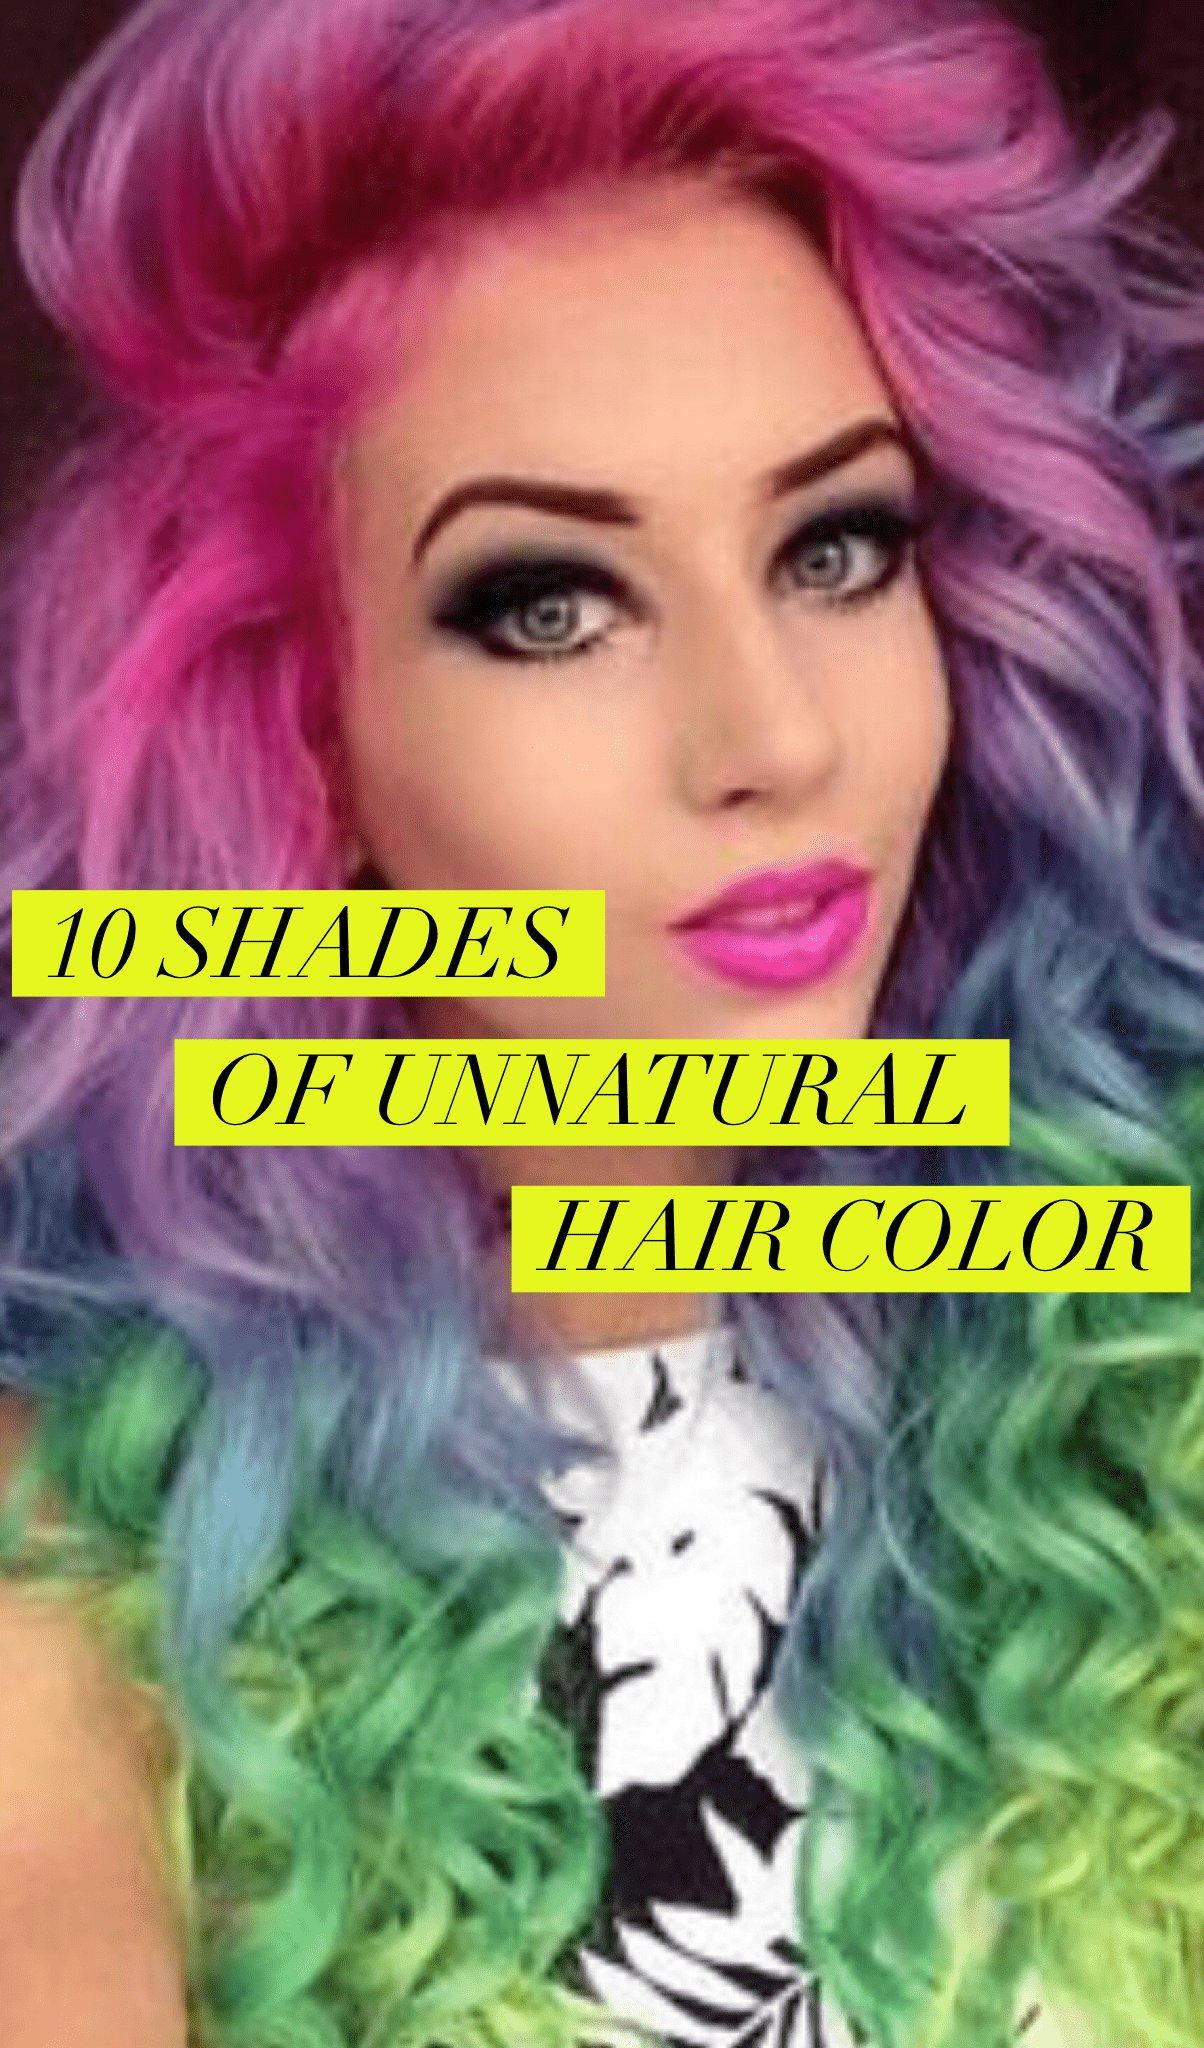 The Best 10 Shades Of Unnatural Hair Color • Holleewoodhair Pictures